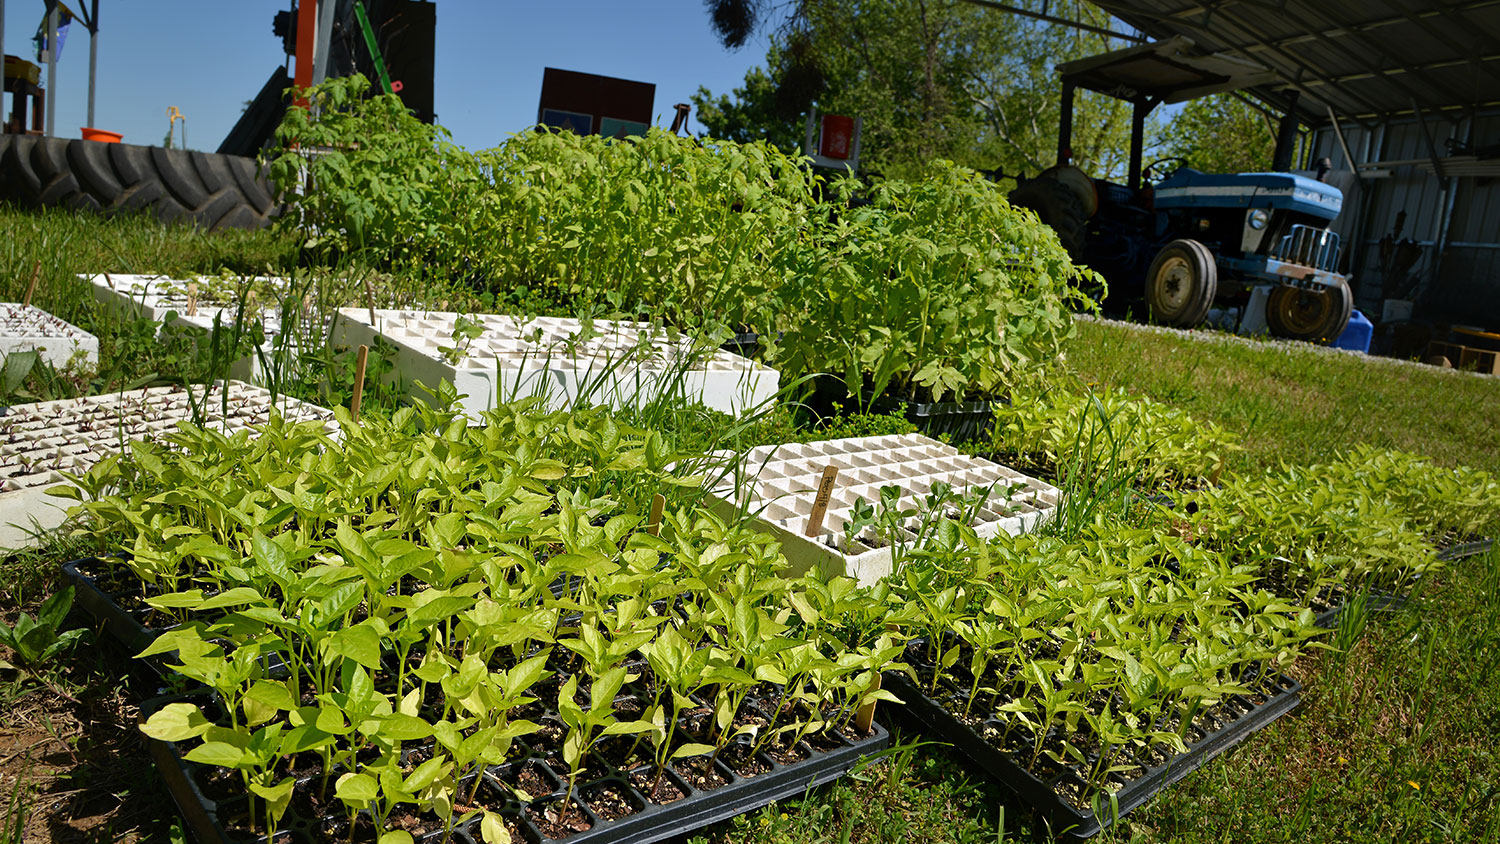 A large number of pepper and tomato gardening trays